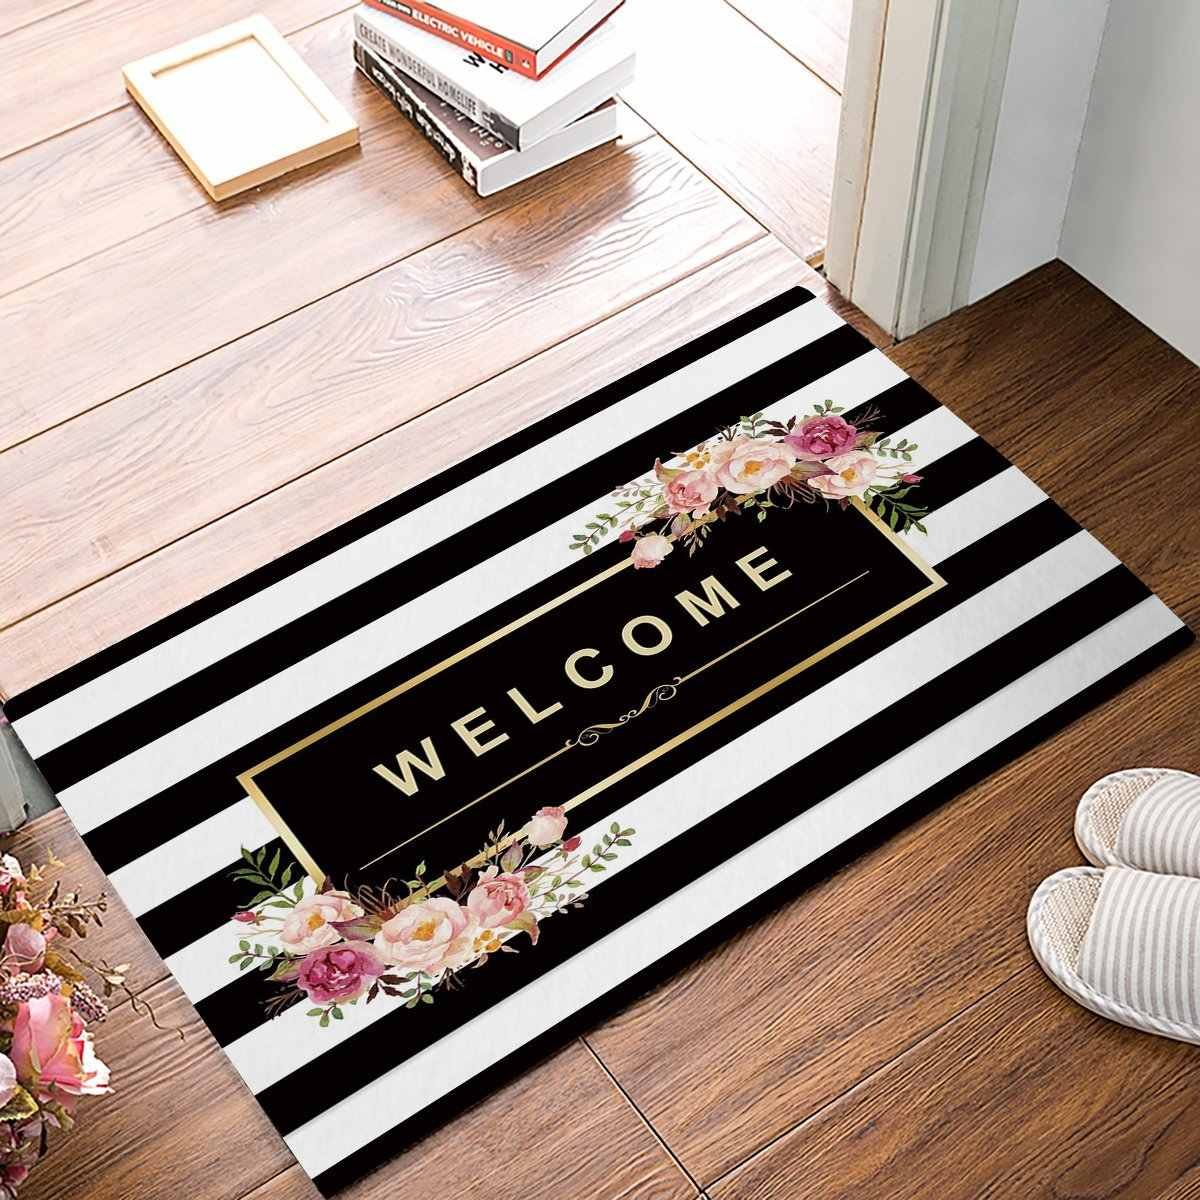 Black And White Stripe Floral Welcome Door Mats Kitchen Floor Bath Entryway Rug Mat Absorbent Indoor Bathroom 32 x 20 Inch